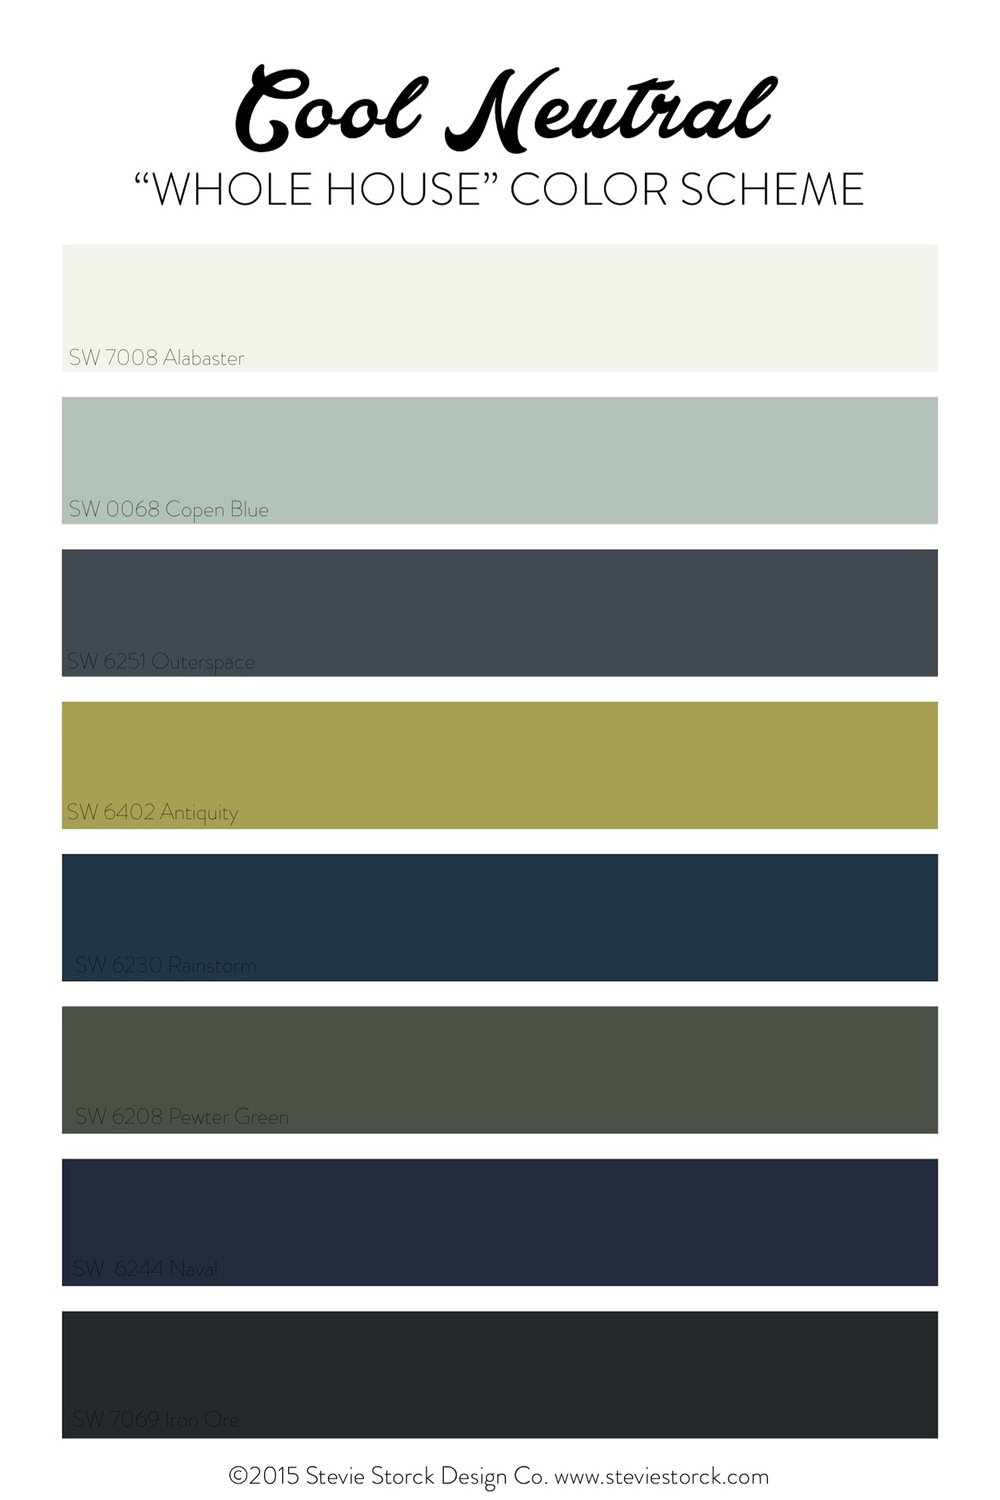 Cool Neutral Whole House Color Scheme: White, light aqua, navy, gray, black and chartreuse - from Stevie Storck Design Co.